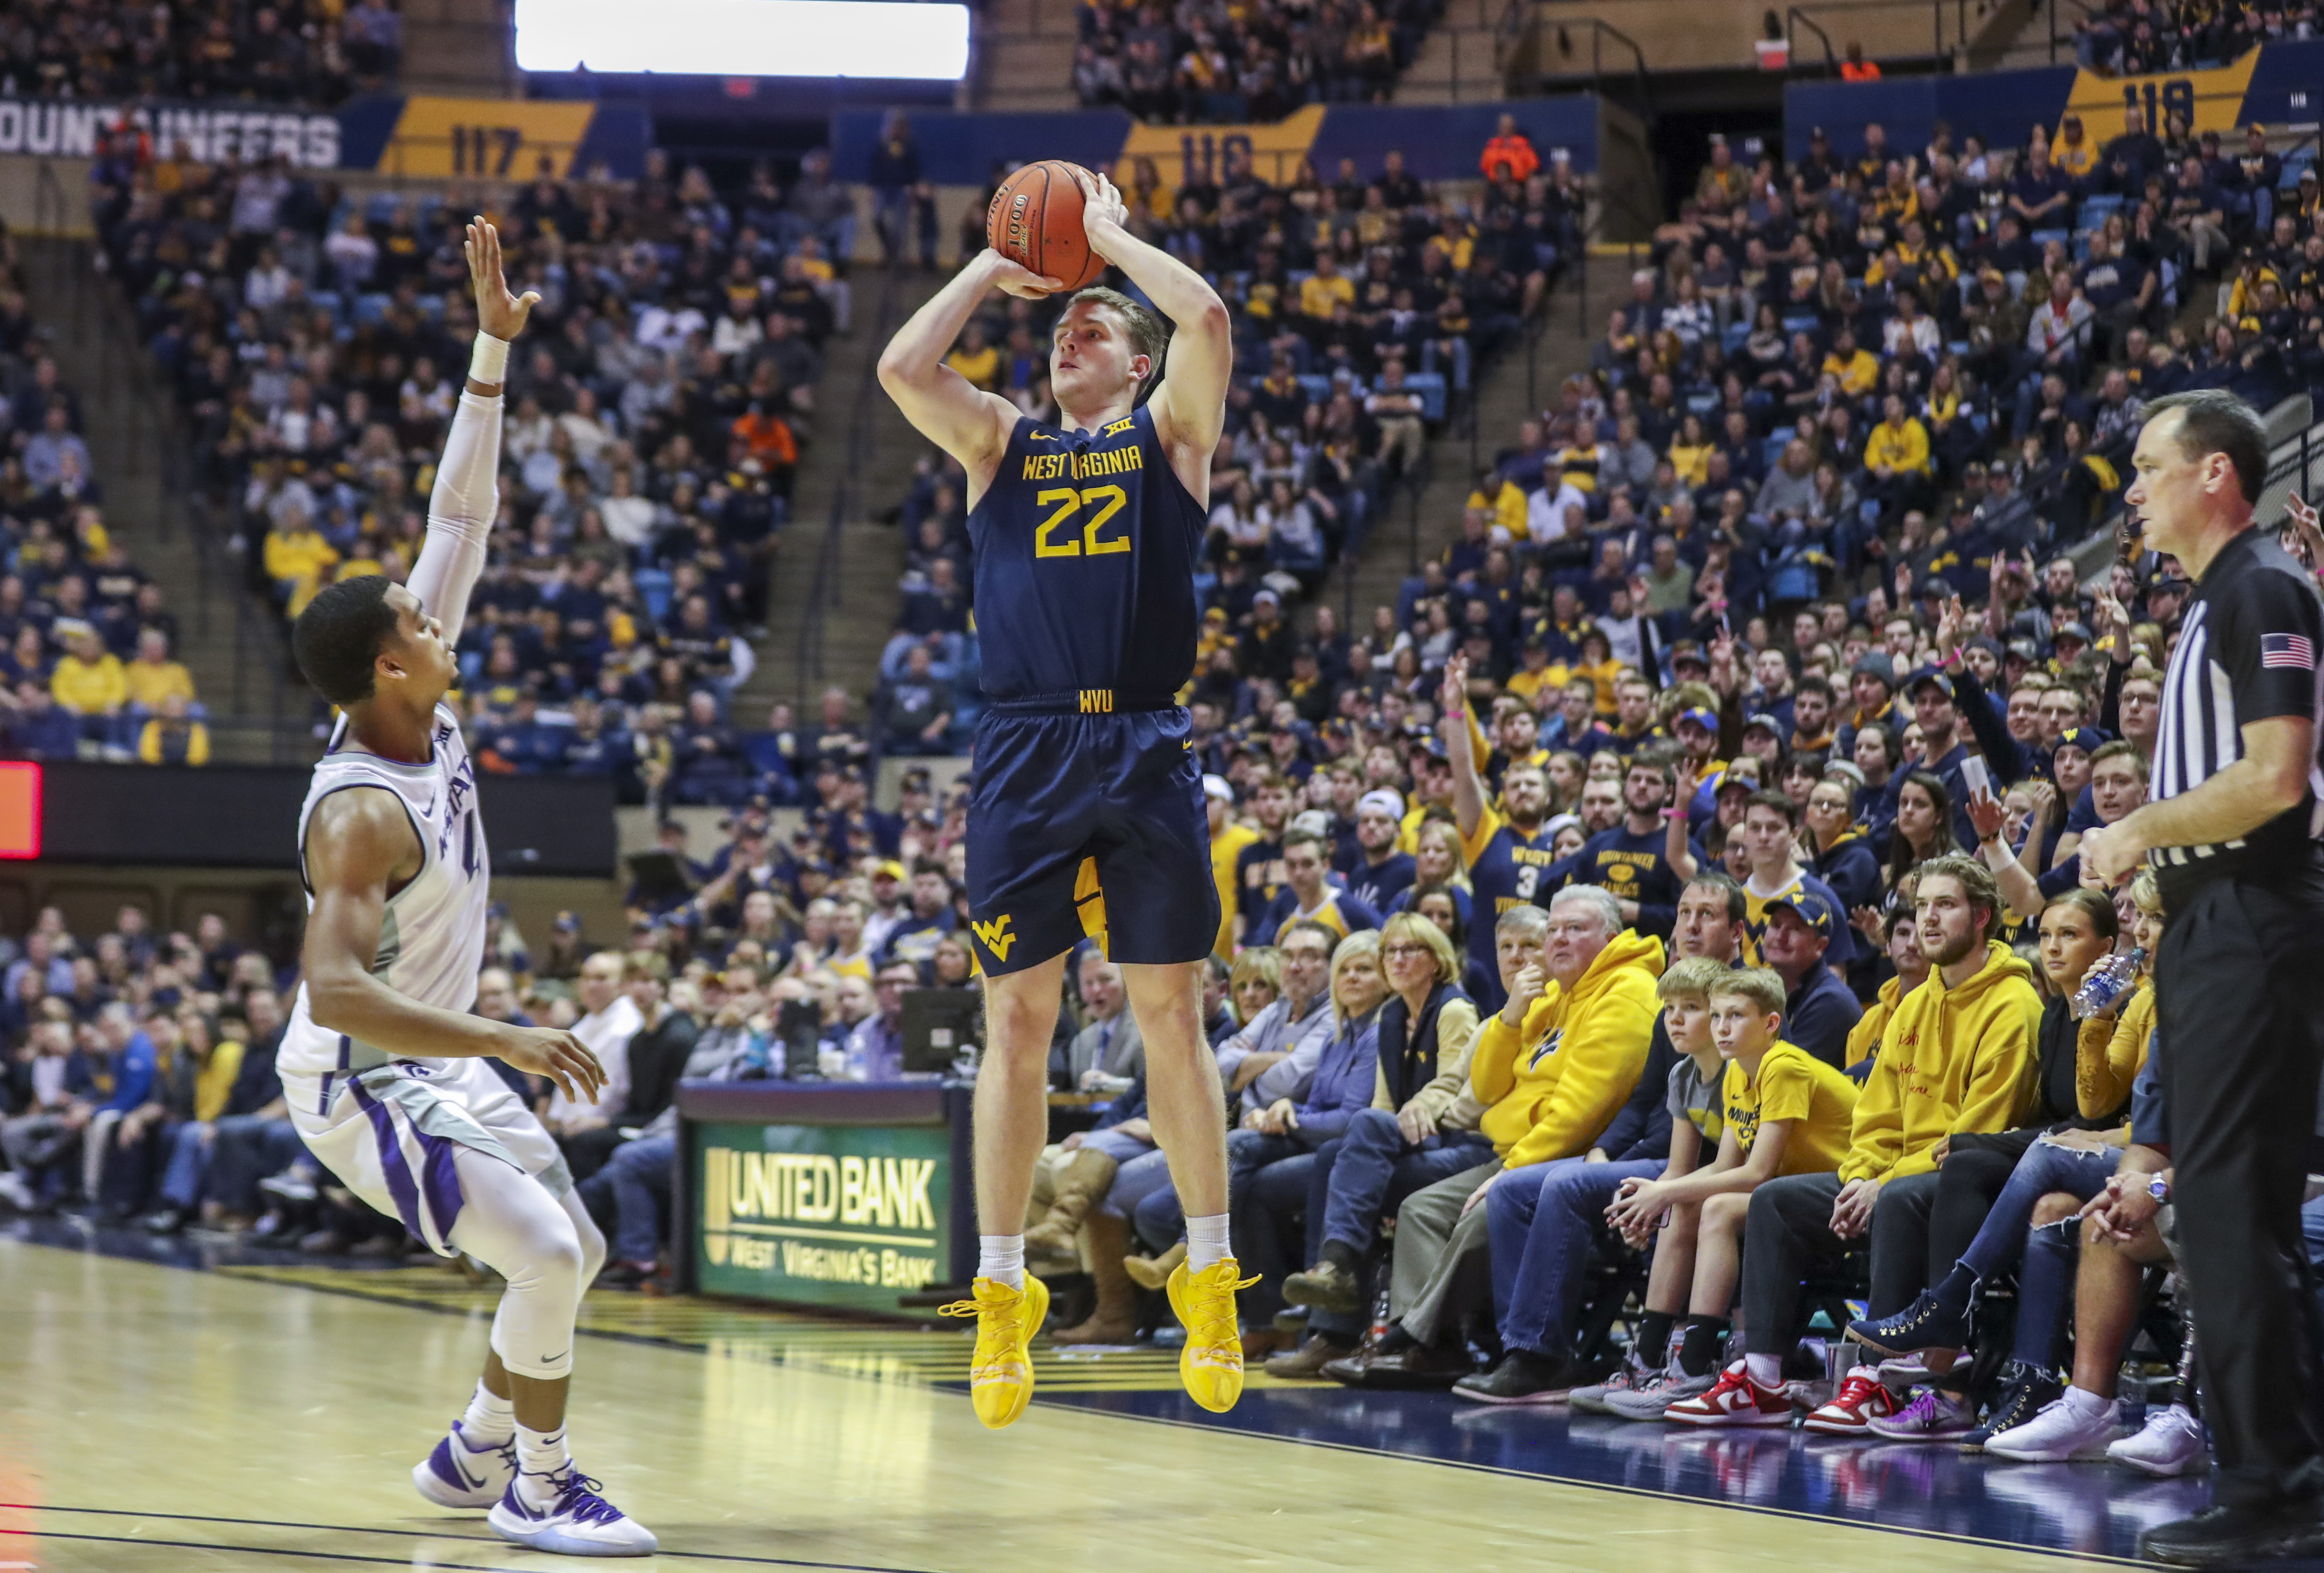 How to Watch, Listen and Follow Along to West Virginia at Baylor